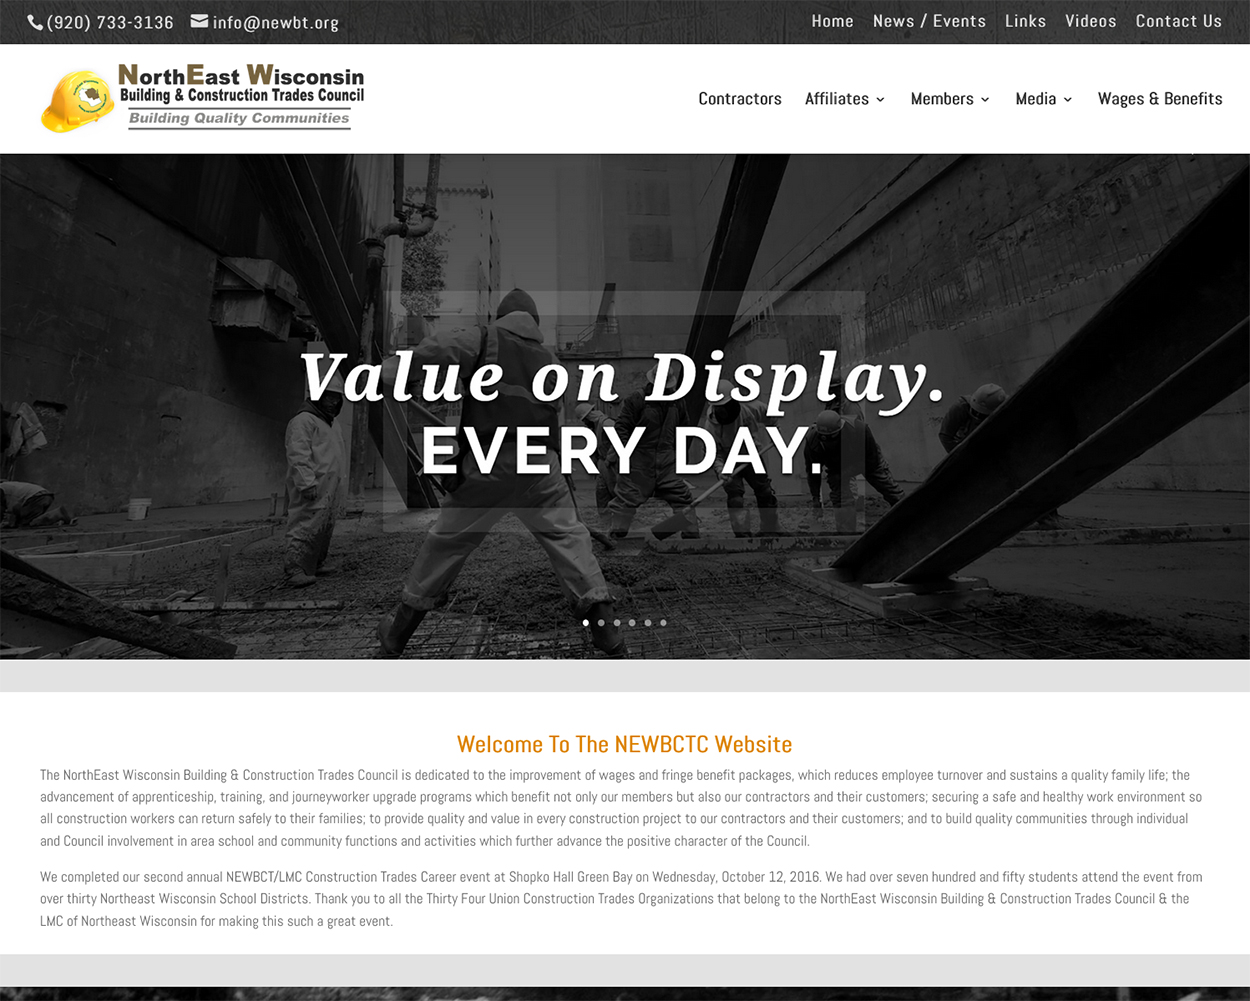 home web design. The NorthEast Wisconsin Building  Construction Trades Council NEWBCTC website designers in Fox Valley Web Design LLC American Website Designers